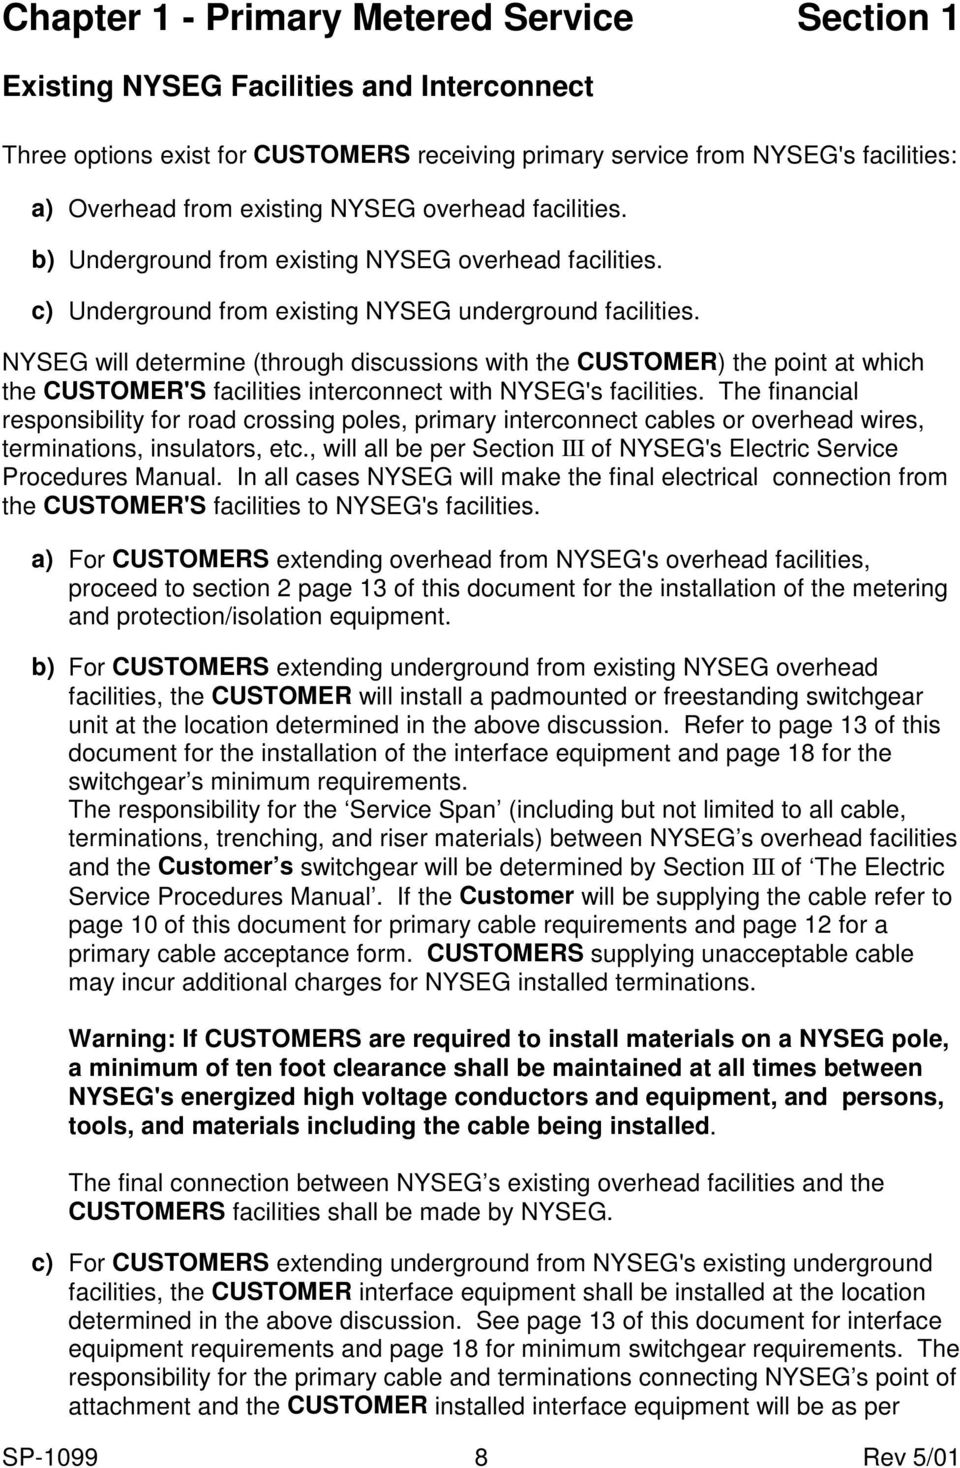 NYSEG will determine (through discussions with the CUSTOMER) the point at which the CUSTOMER'S facilities interconnect with NYSEG's facilities.